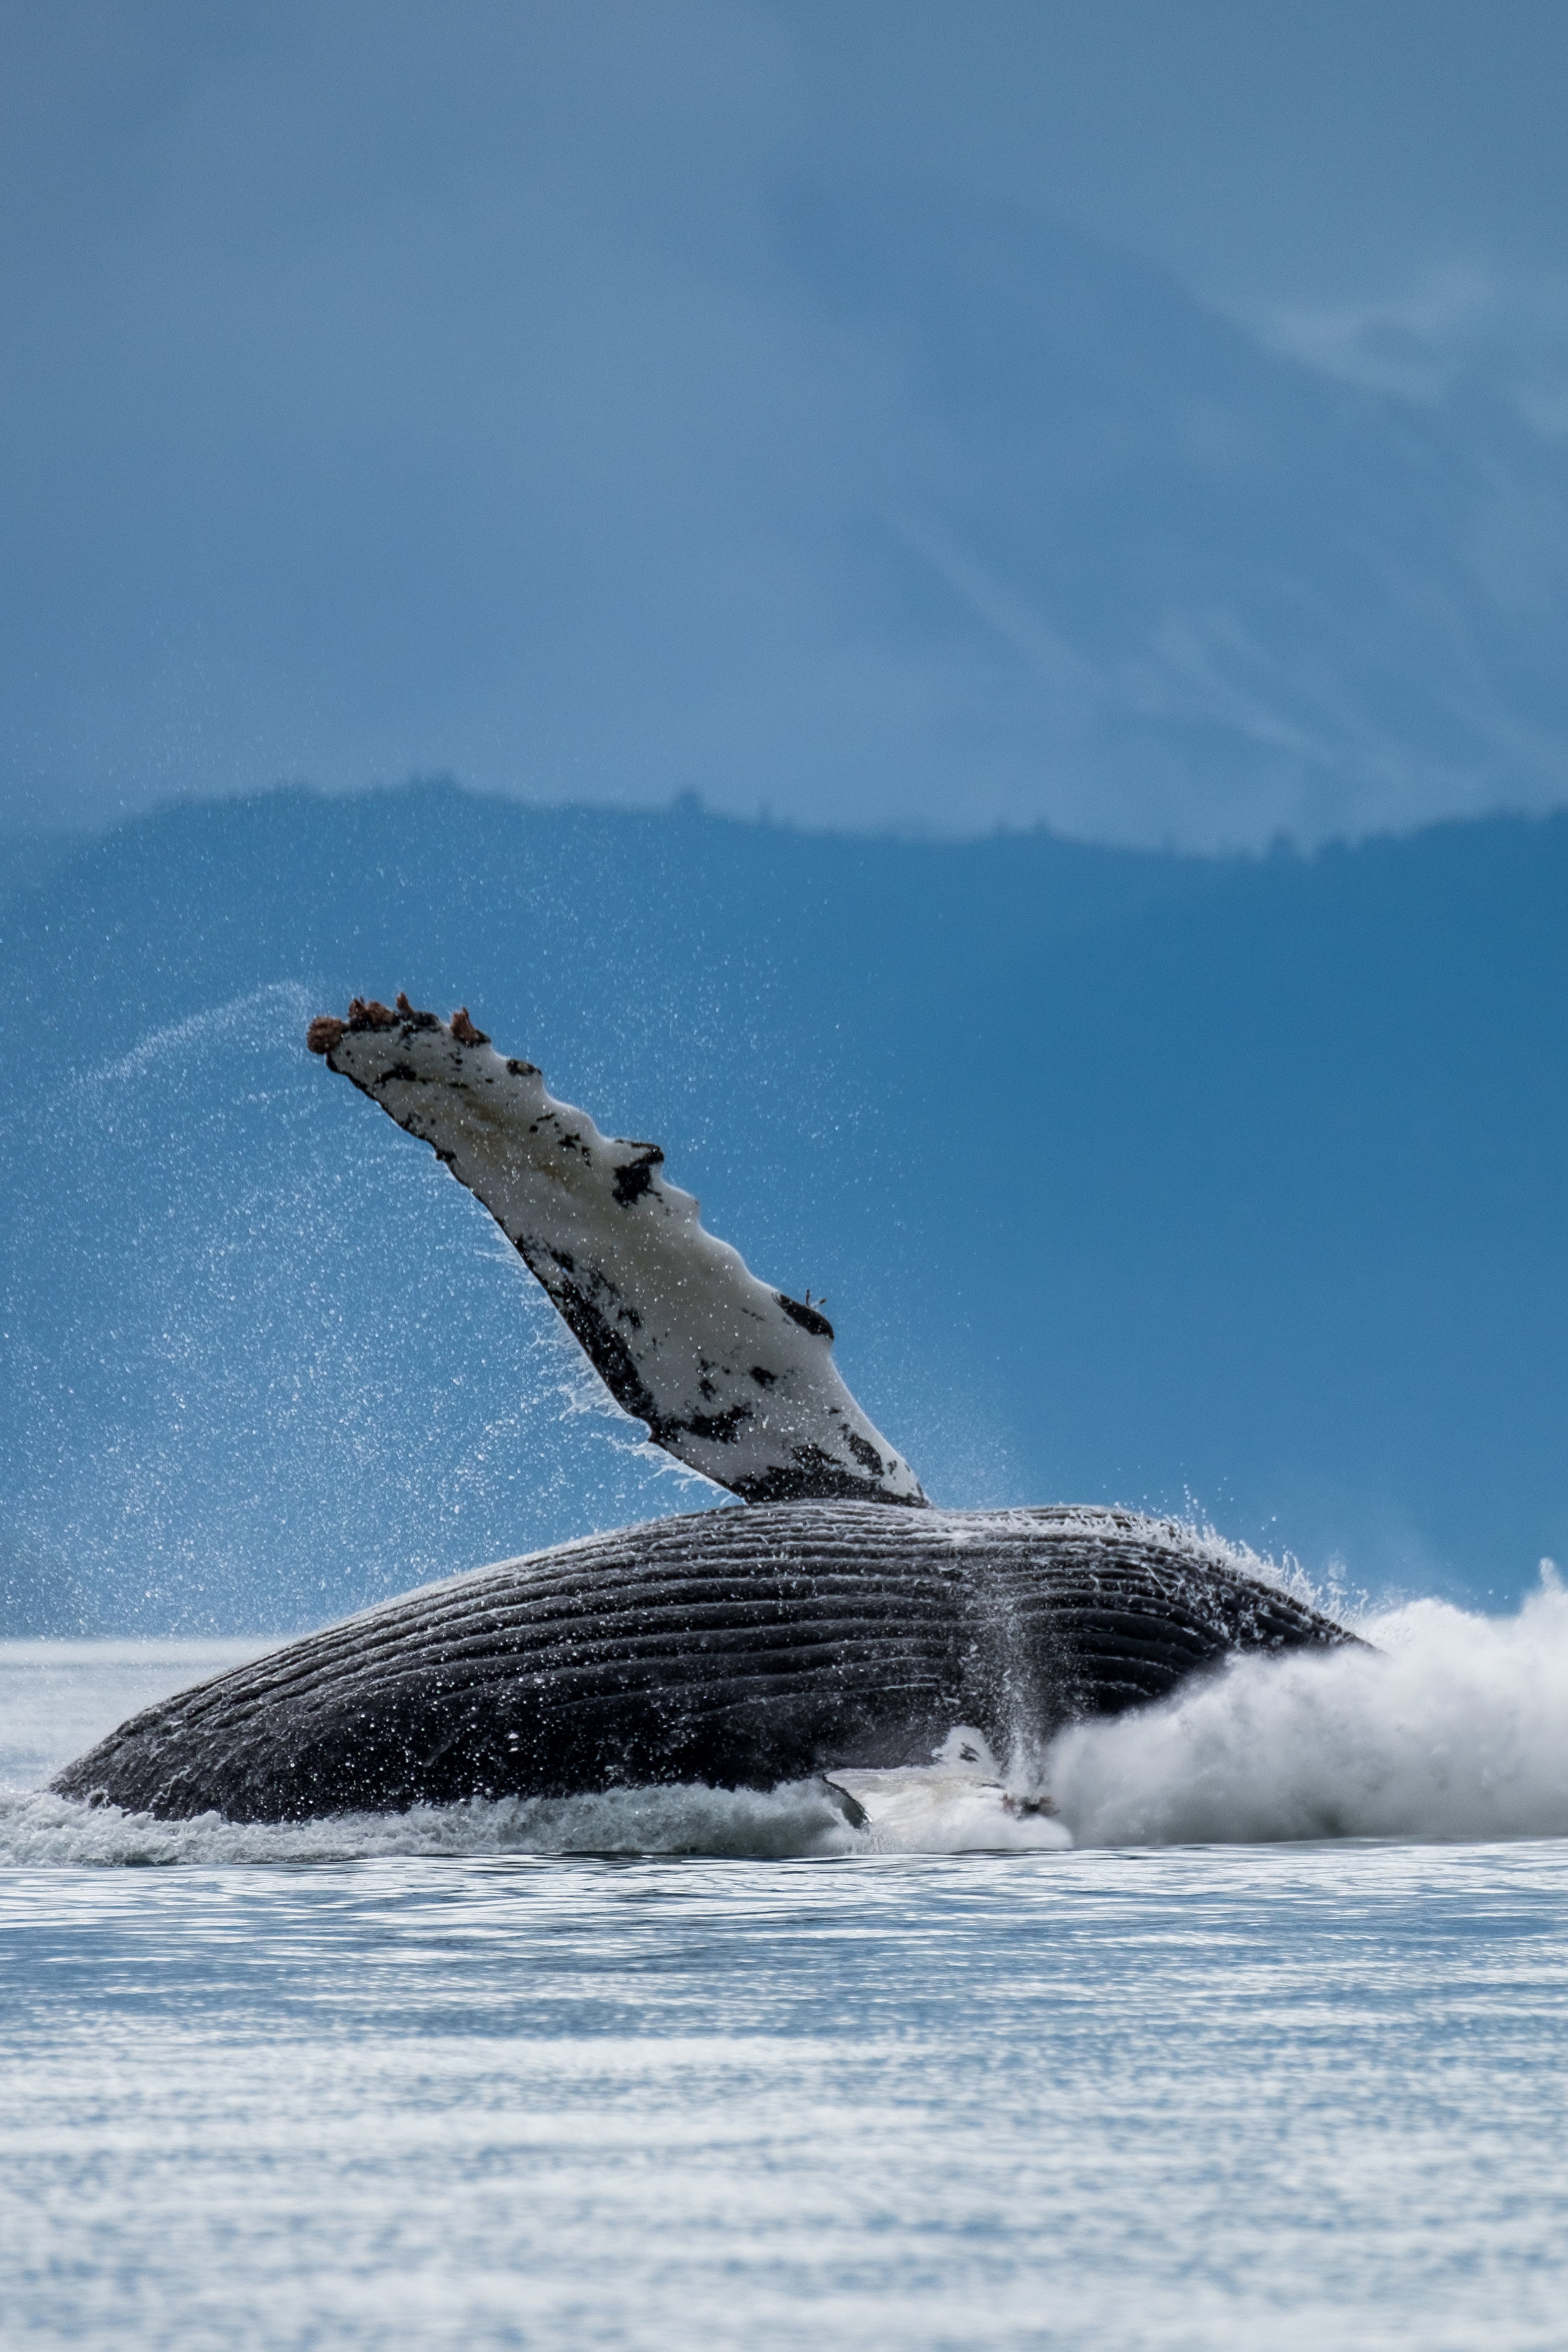 A humpback whale breaches, that is, rises completely from the water, in Glacier Bay Alaska.